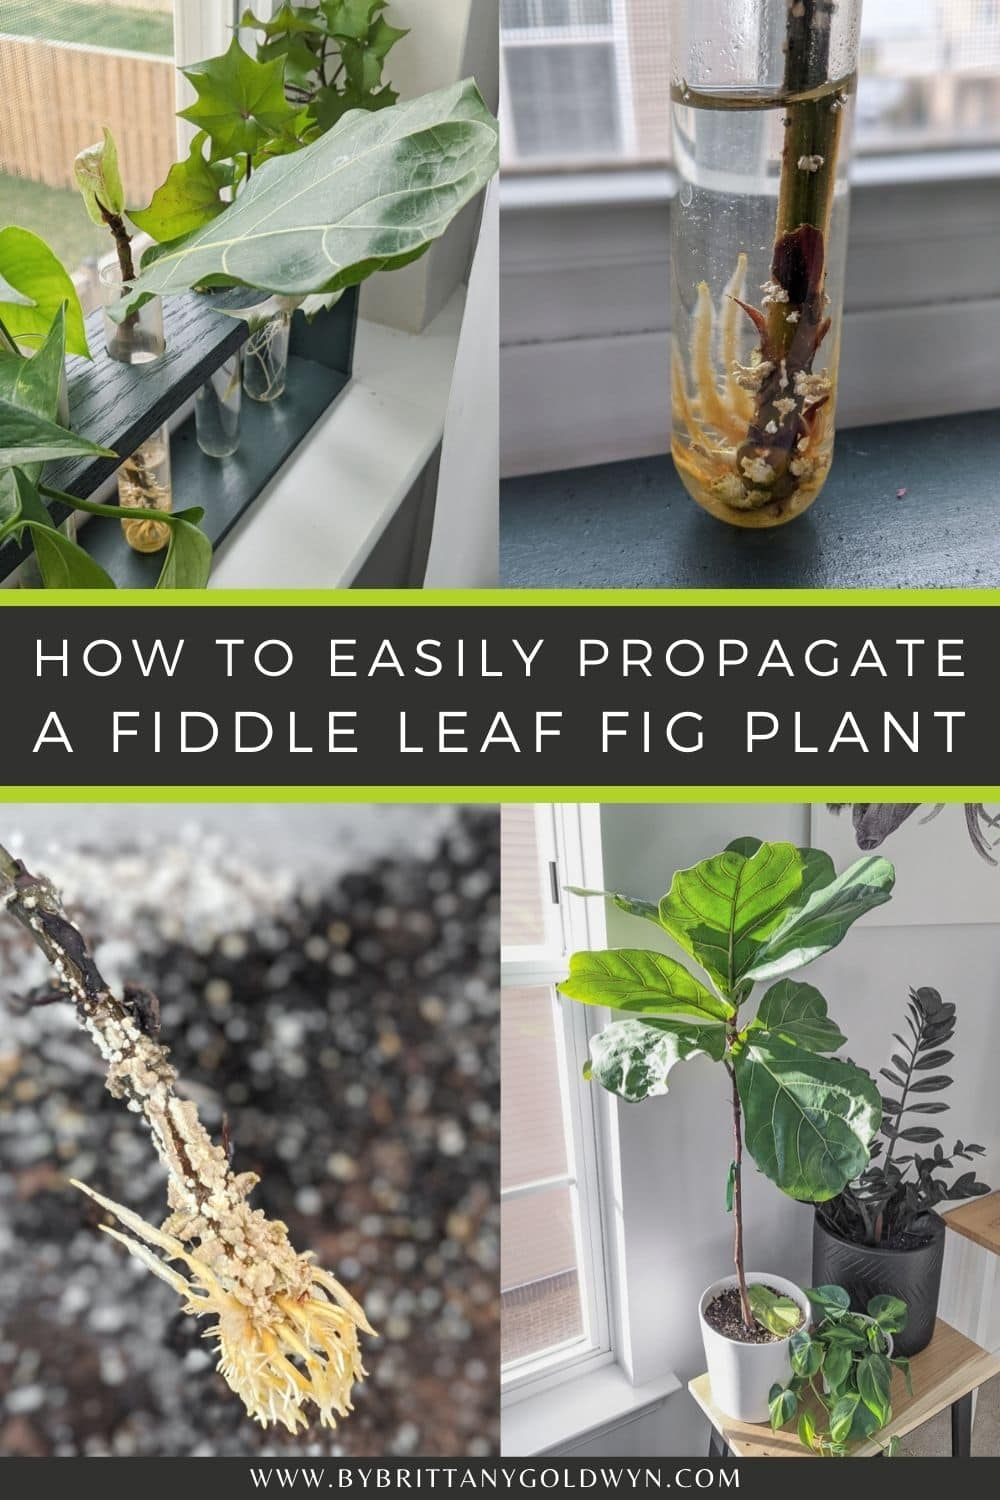 pinnable graphic with pictures of a fiddle leaf fig and text overlay about how to propagate fiddle leaf figs